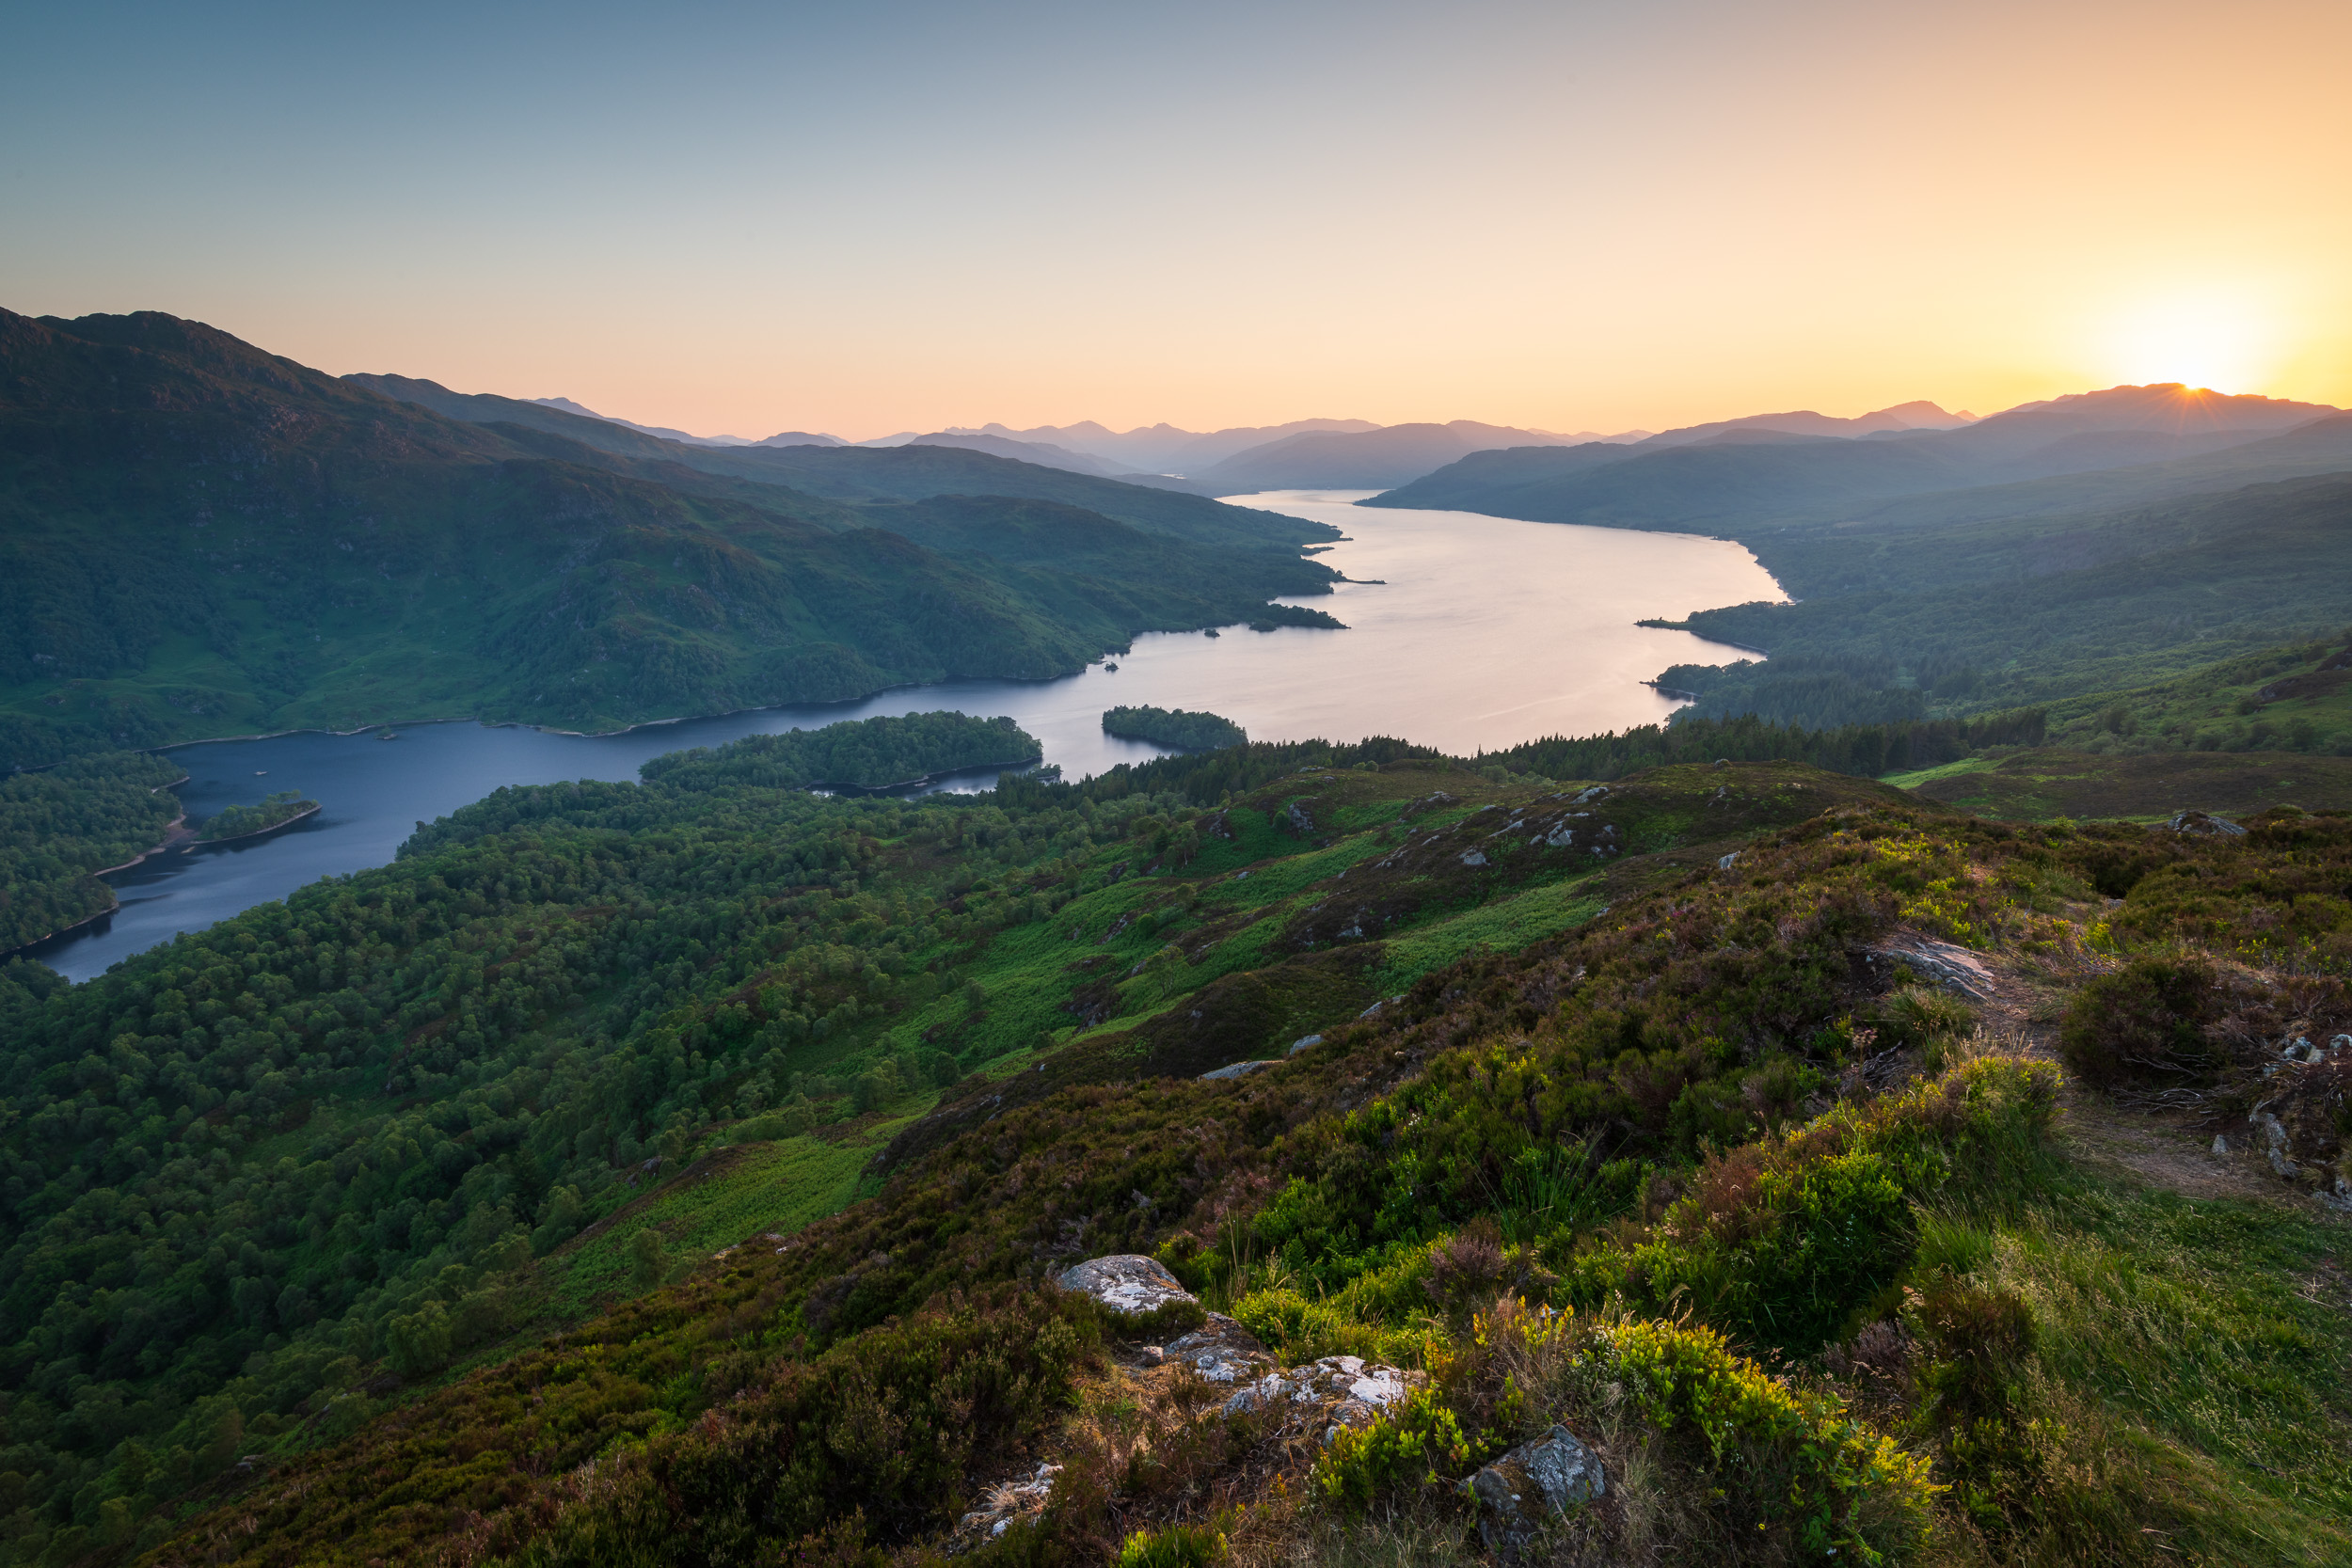 A Summer Sunset At Ben A'an and Loch Katrine   - Loch Lomond and The Trossachs National Park::  Nikon D850, Nikkor 16-35 mm f/4 at 18 mm, 0.5 sec at ISO 64, f/18, Lee Filters 2 Stop ND Grad.